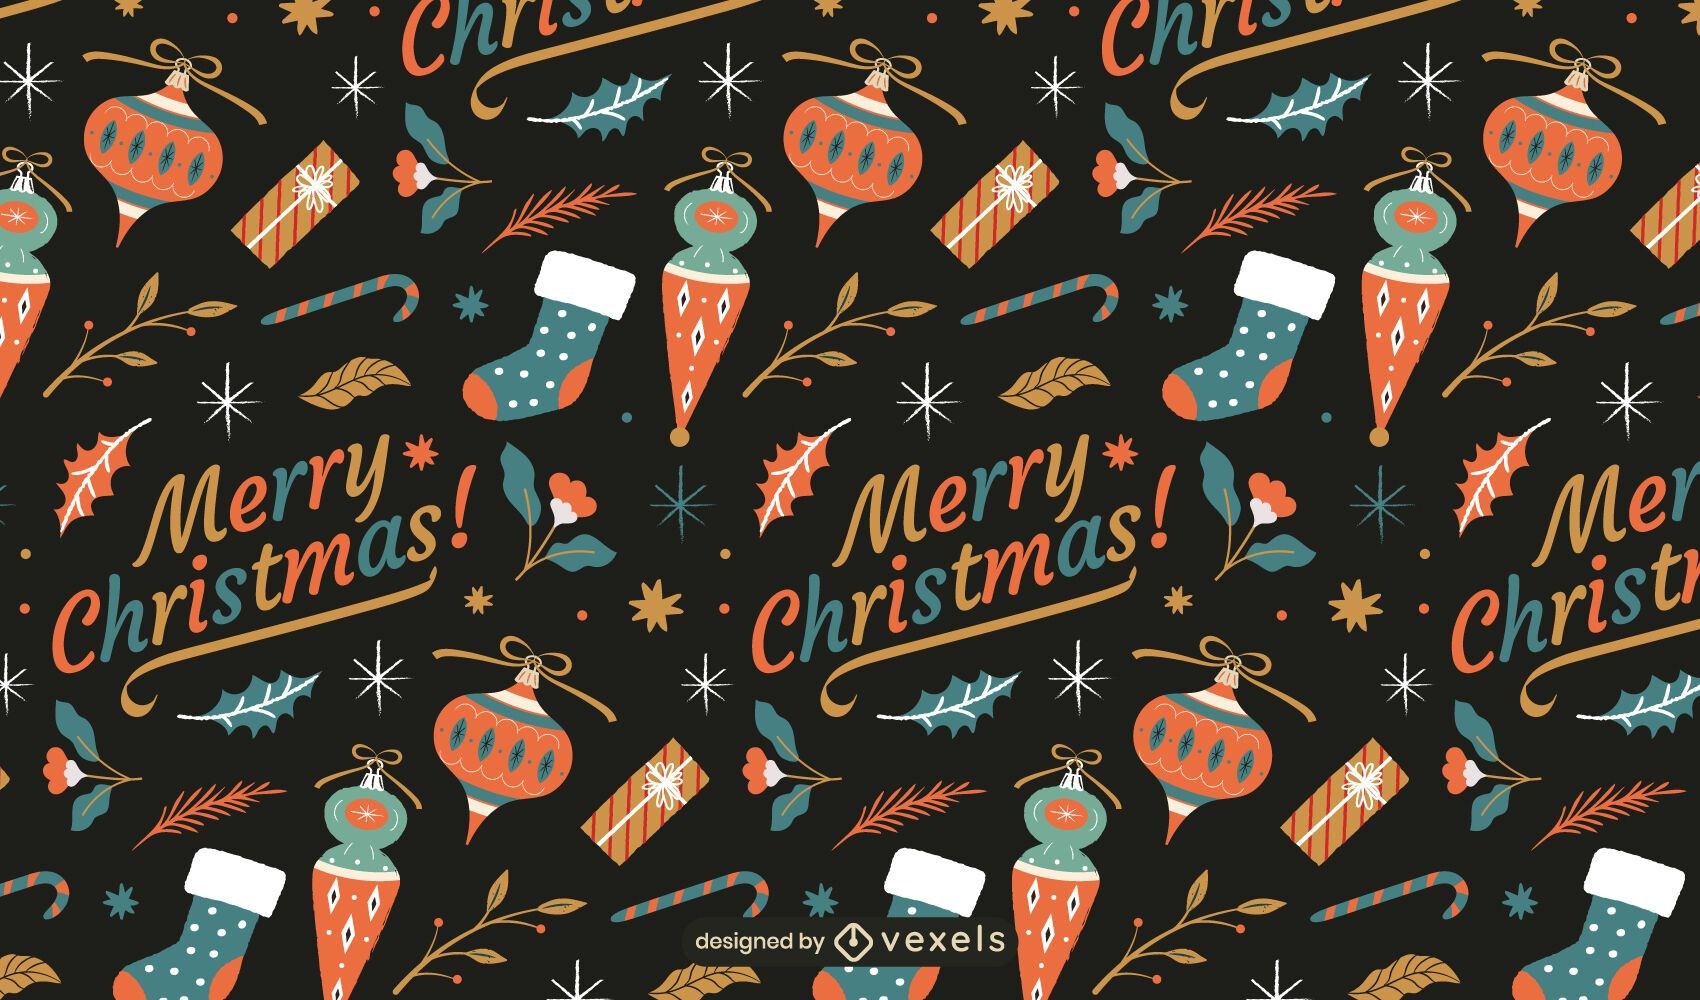 Merry christmas ornaments pattern